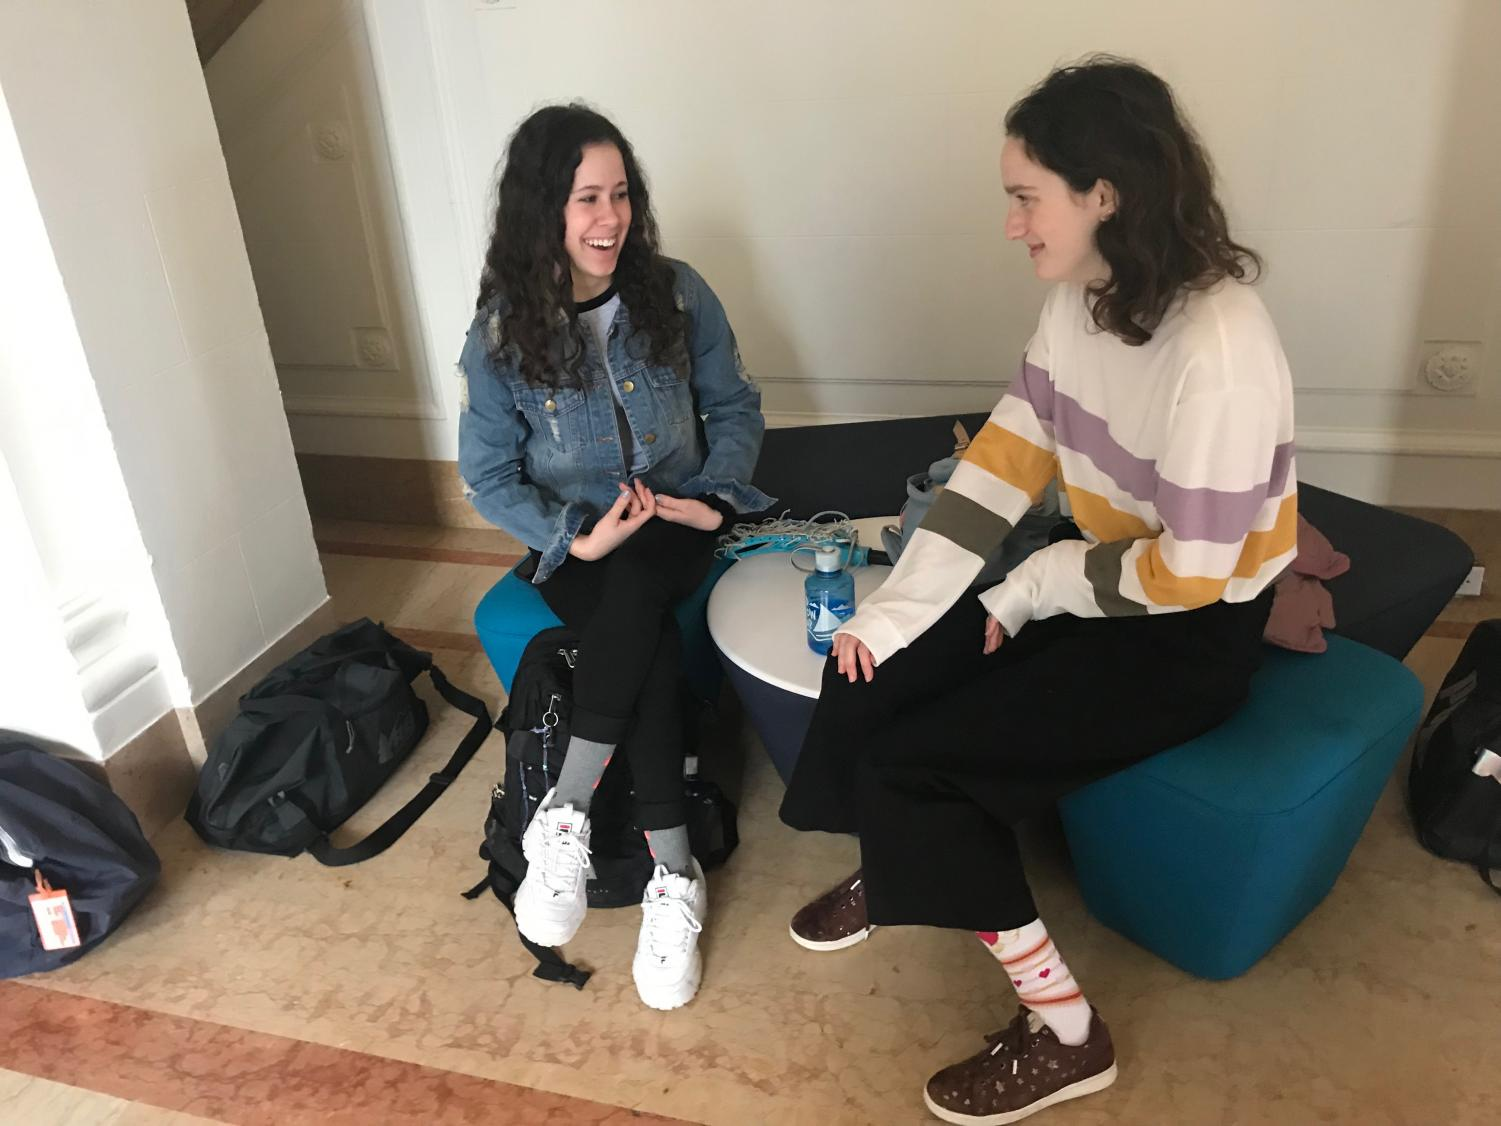 Sophomores Emily LeBlanc, who is visiting from the Academy of the Sacred Heart in New Orleans, and Audrey Scott, her host, talk in the main hall before class. Scott went to New Orleans in February and attended Academy of the Sacred Heart for a week with LeBlanc.